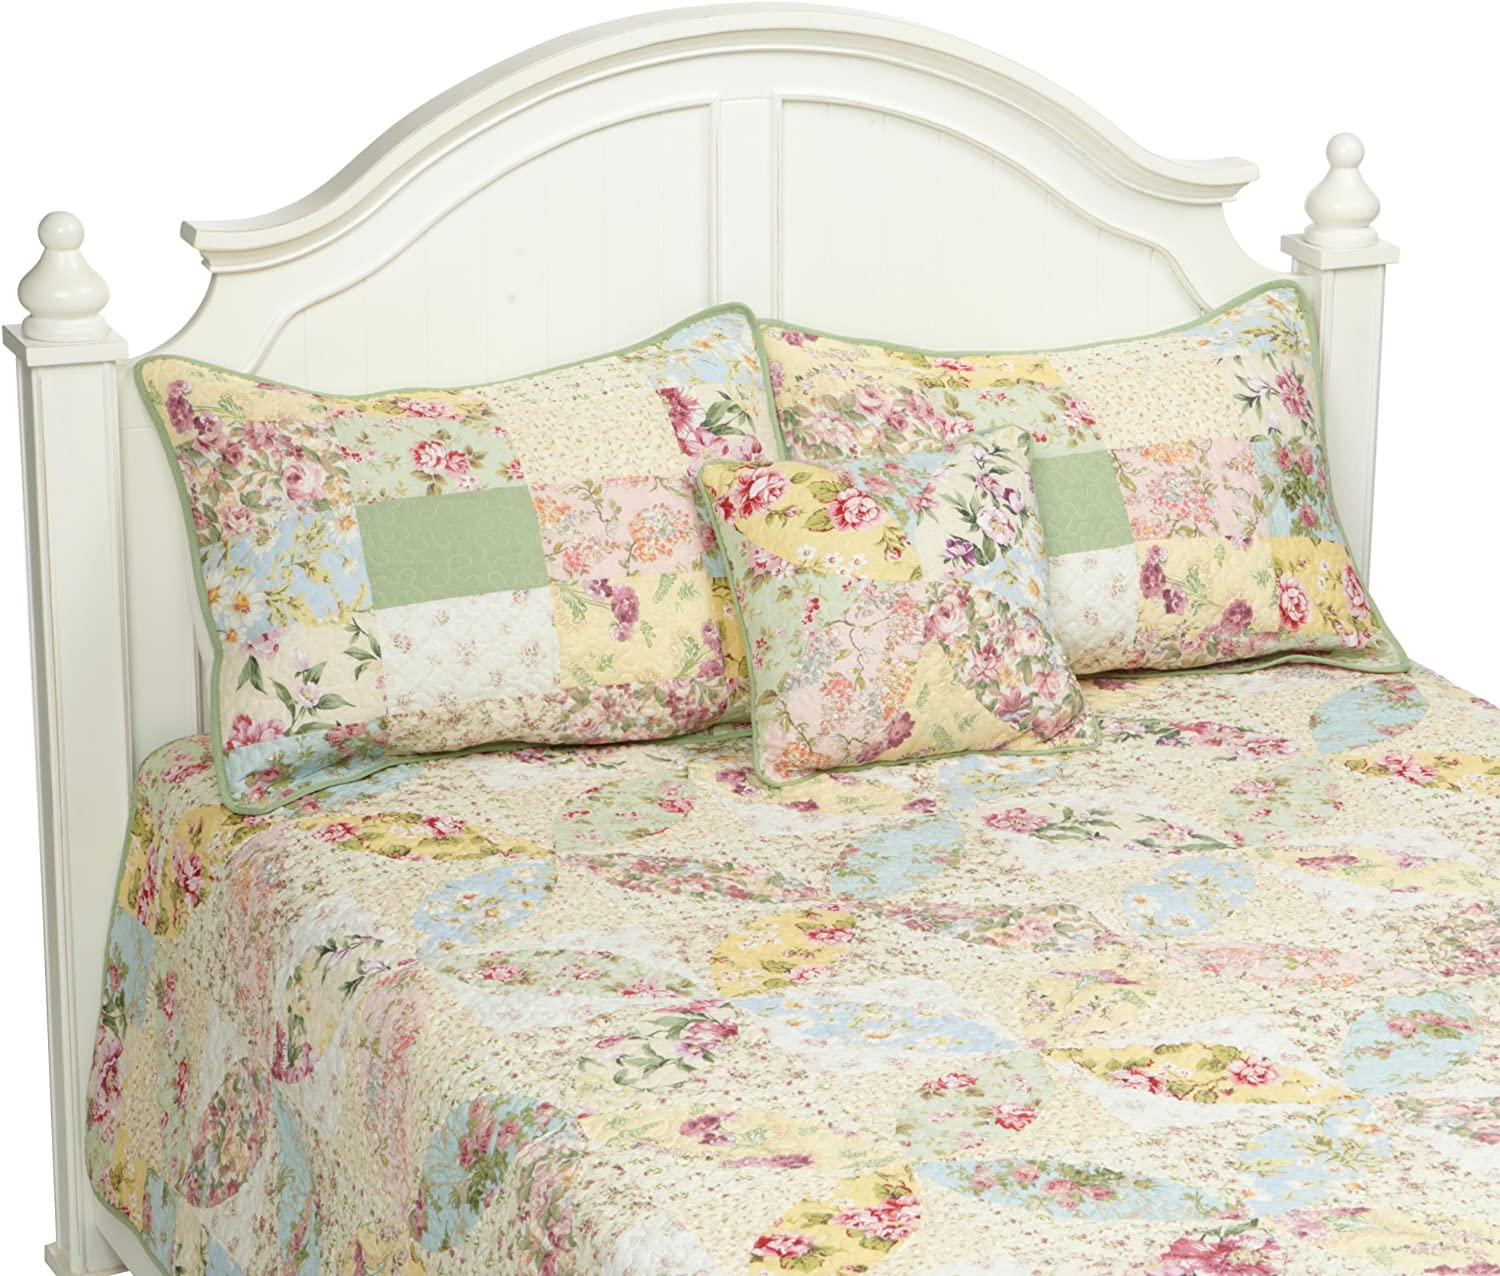 Hedaya Home Limited time trial price Fashions Flores Full Multi Queen Set Quilt Max 74% OFF